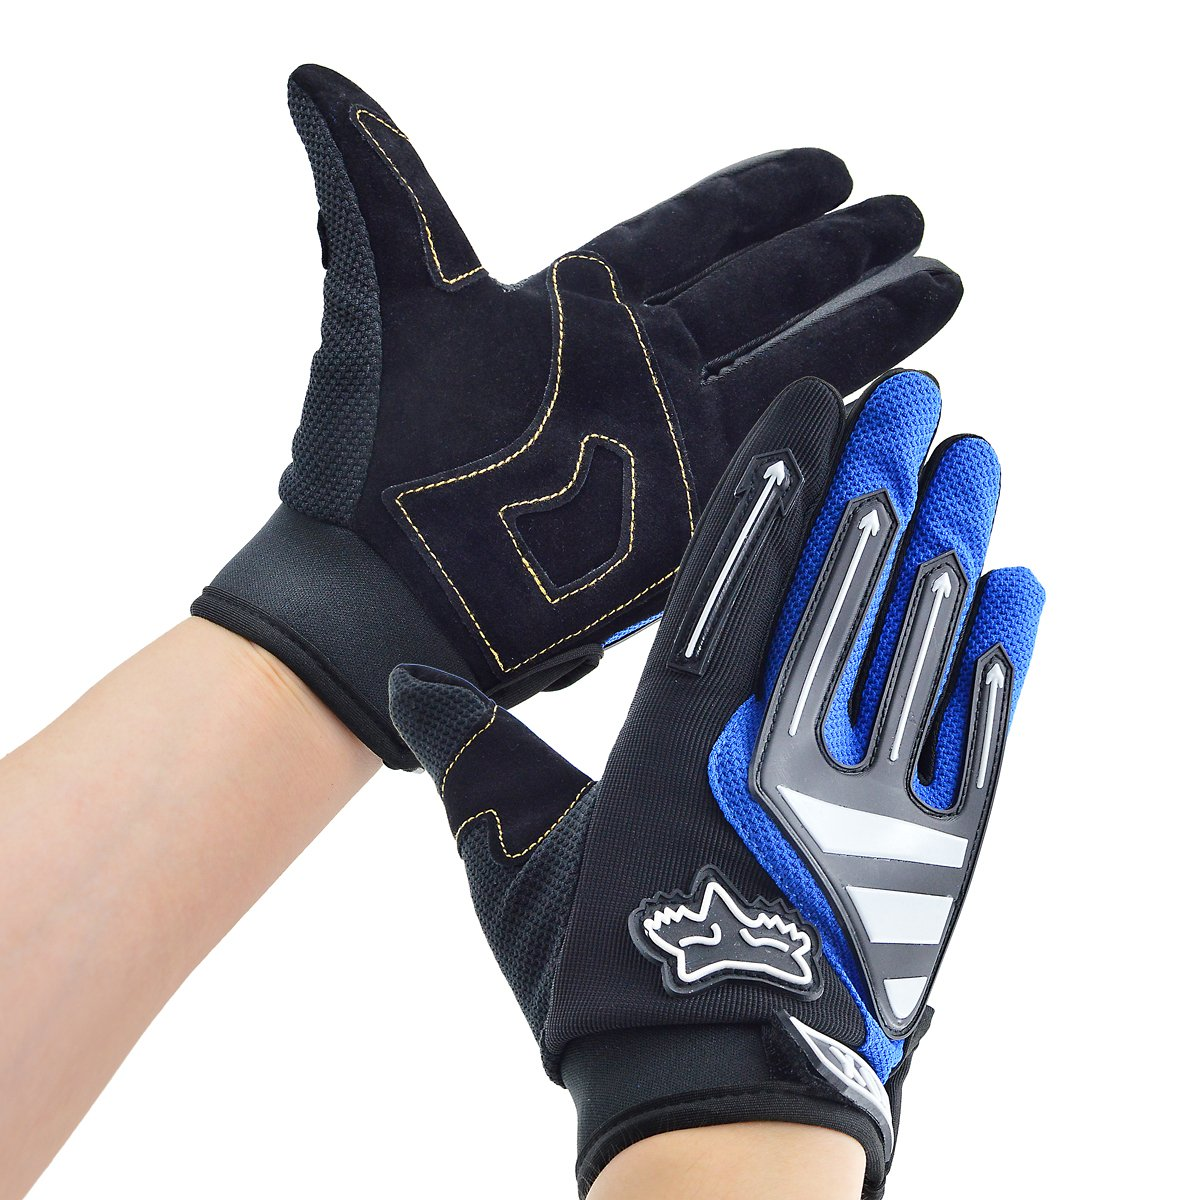 Motorcycle gloves to prevent numbness - Bicycle Gloves Xiyalri Bike Motorcycle Gloves Men Women Full Finger Gloves Arrow Style Blue Size L Amazon Co Uk Sports Outdoors